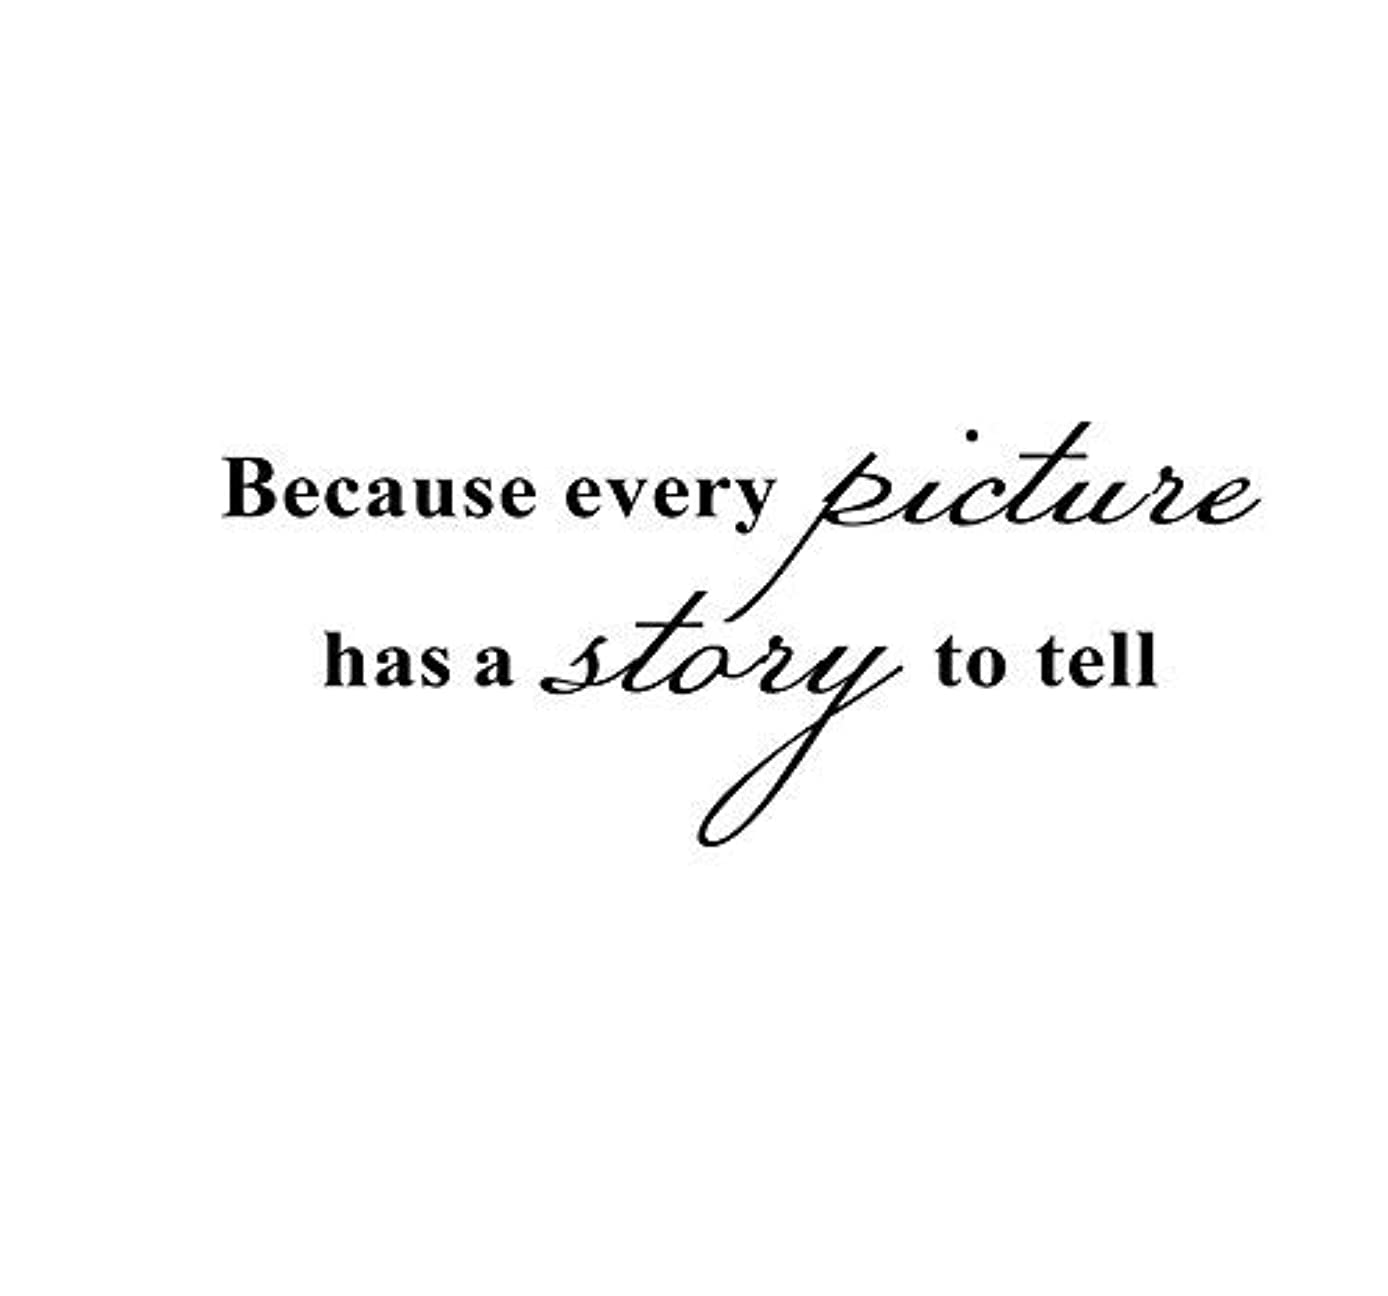 Boodecal Because Every Picture Has a Story to Tell Removable Wall Lettering Stickers Quotes and Sayings Home Art Décor Decals 17*7 Inches